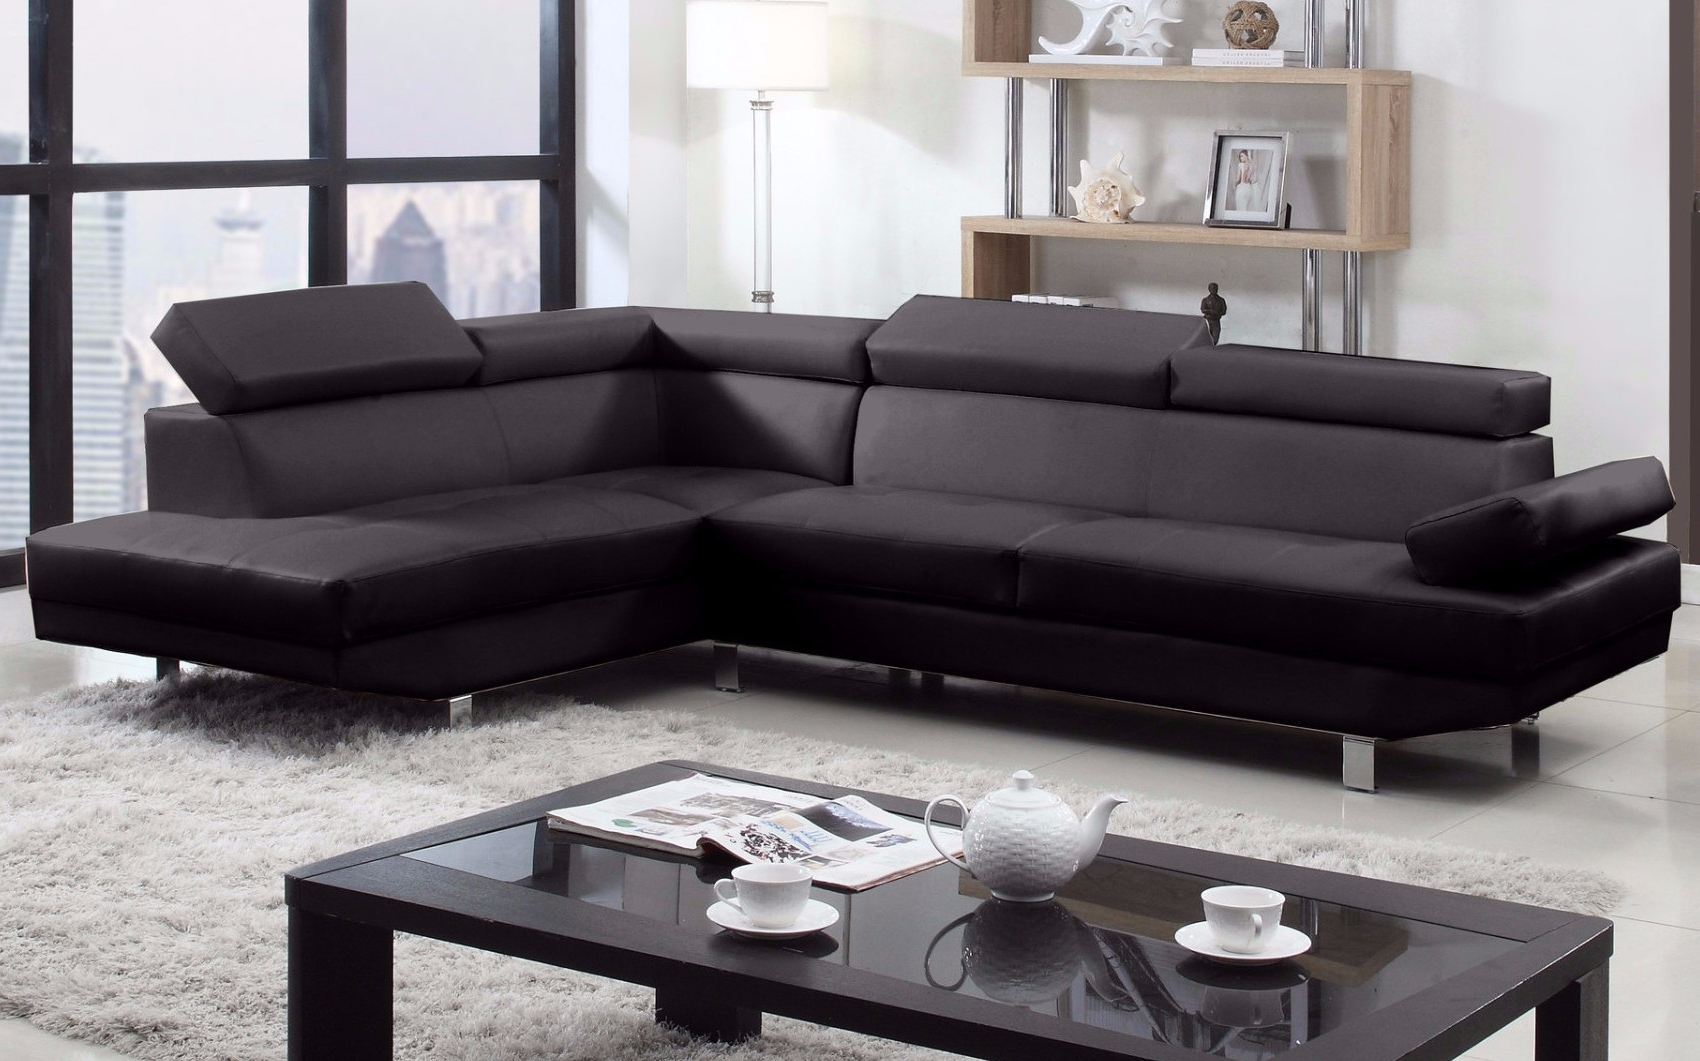 Well Known 2 Piece Modern Bonded Leather Right Facing Chaise Sectional Sofa Pertaining To 2 Seat Sectional Sofas (View 15 of 20)